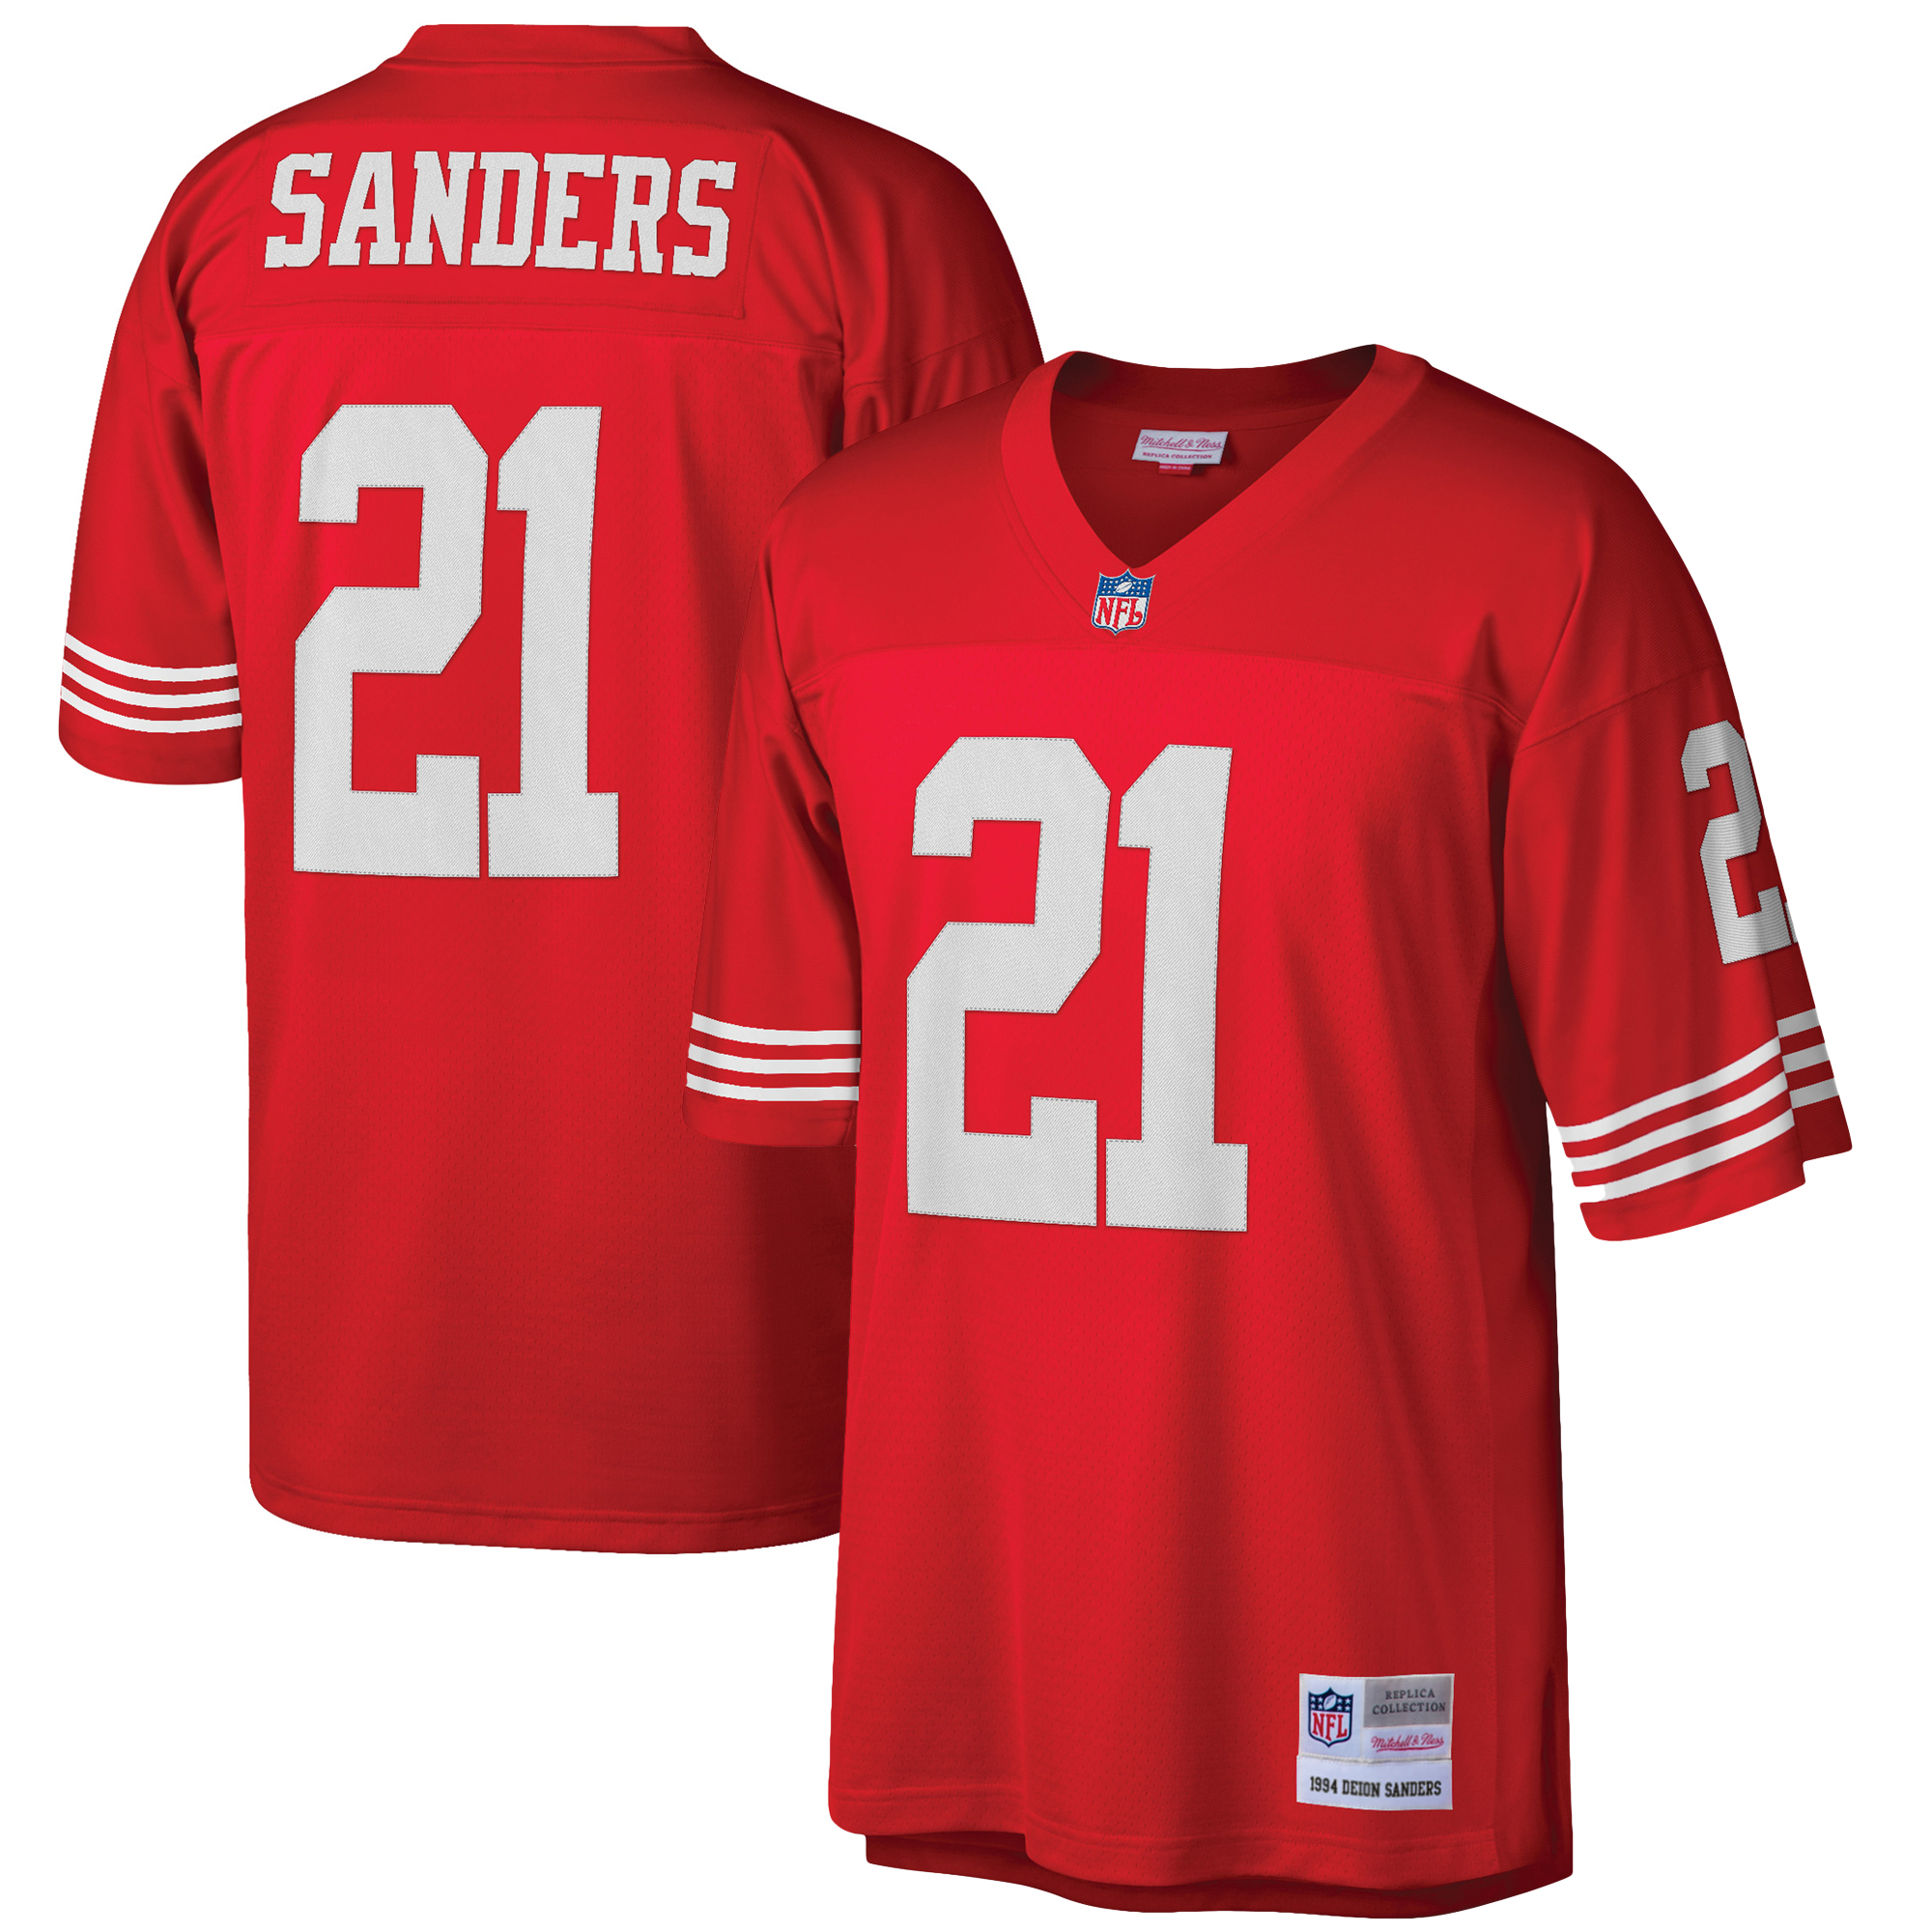 Deion Sanders San Francisco 49ers Mitchell & Ness Retired Player Vintage Replica Jersey - Scarlet